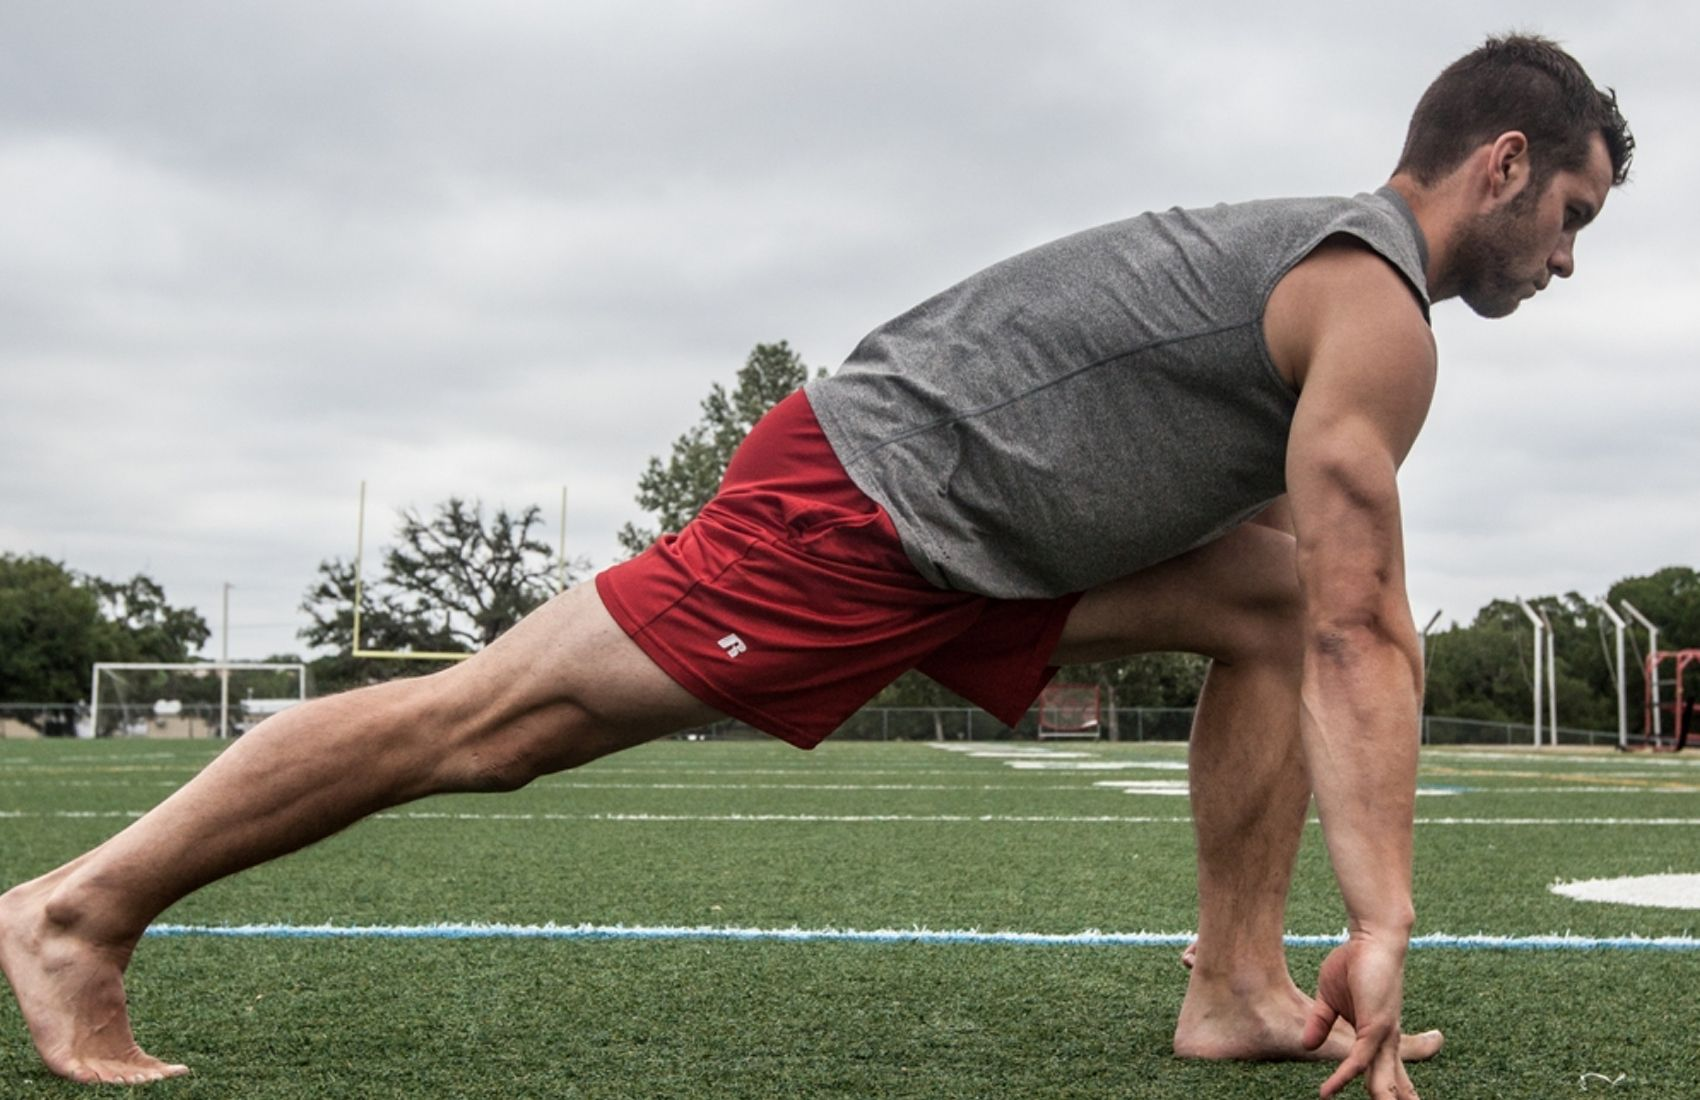 Why Every Athlete Should Practice Yoga